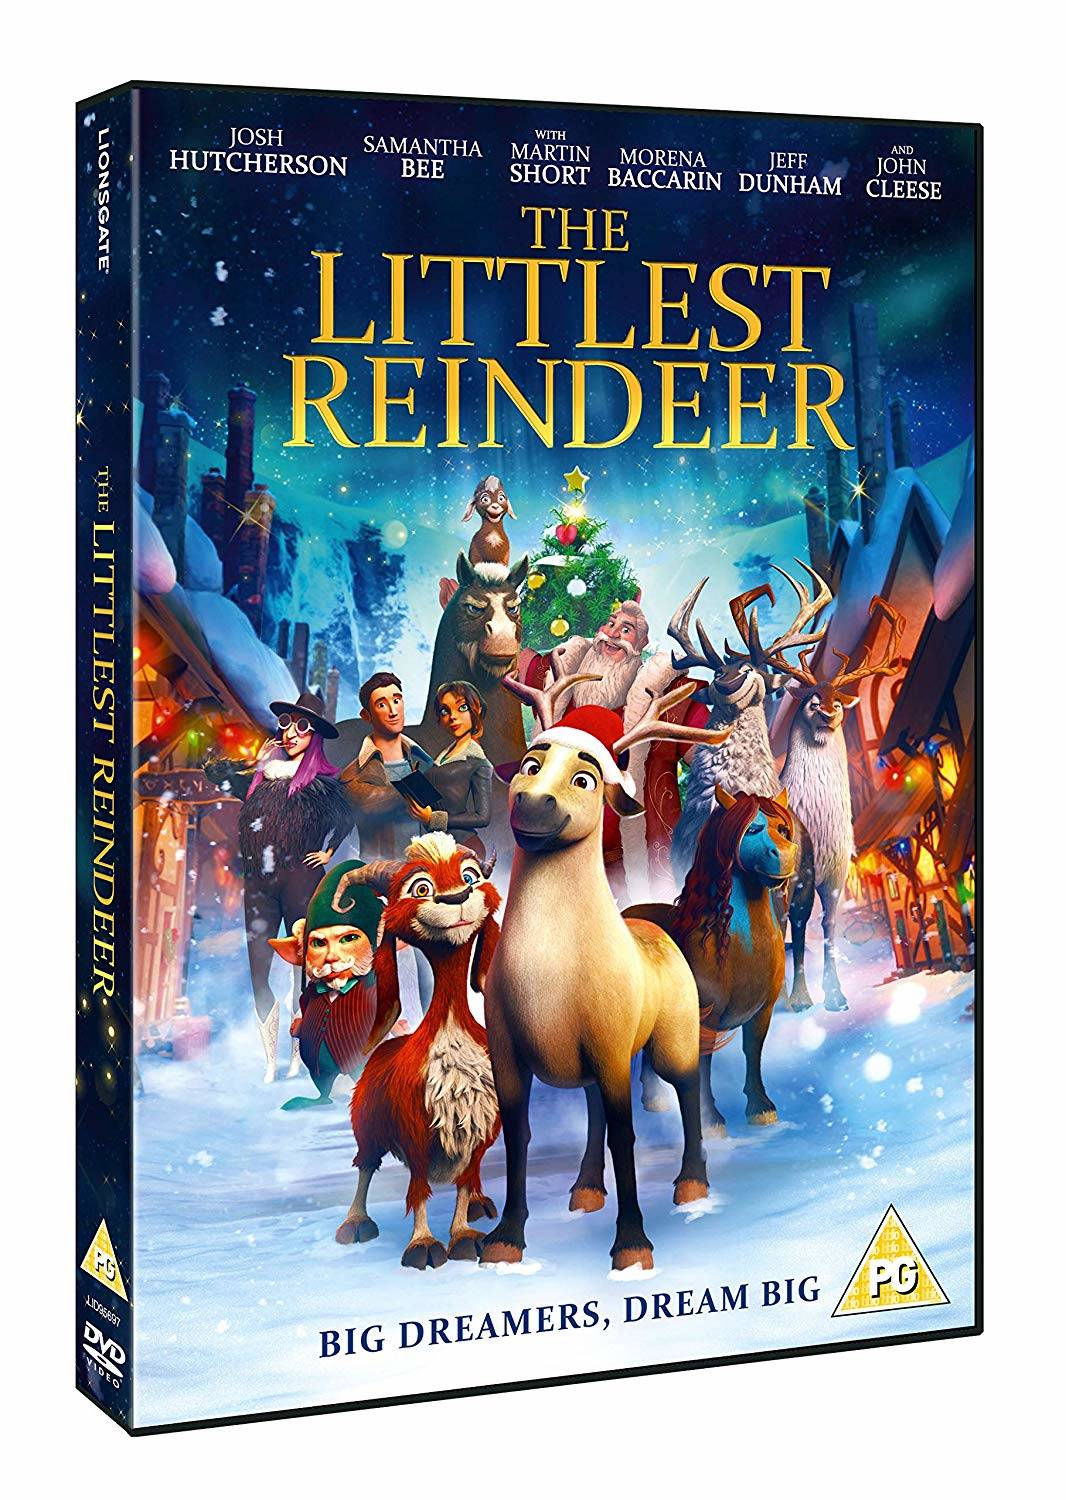 The Littlest Reindeer DVD review and giveaway